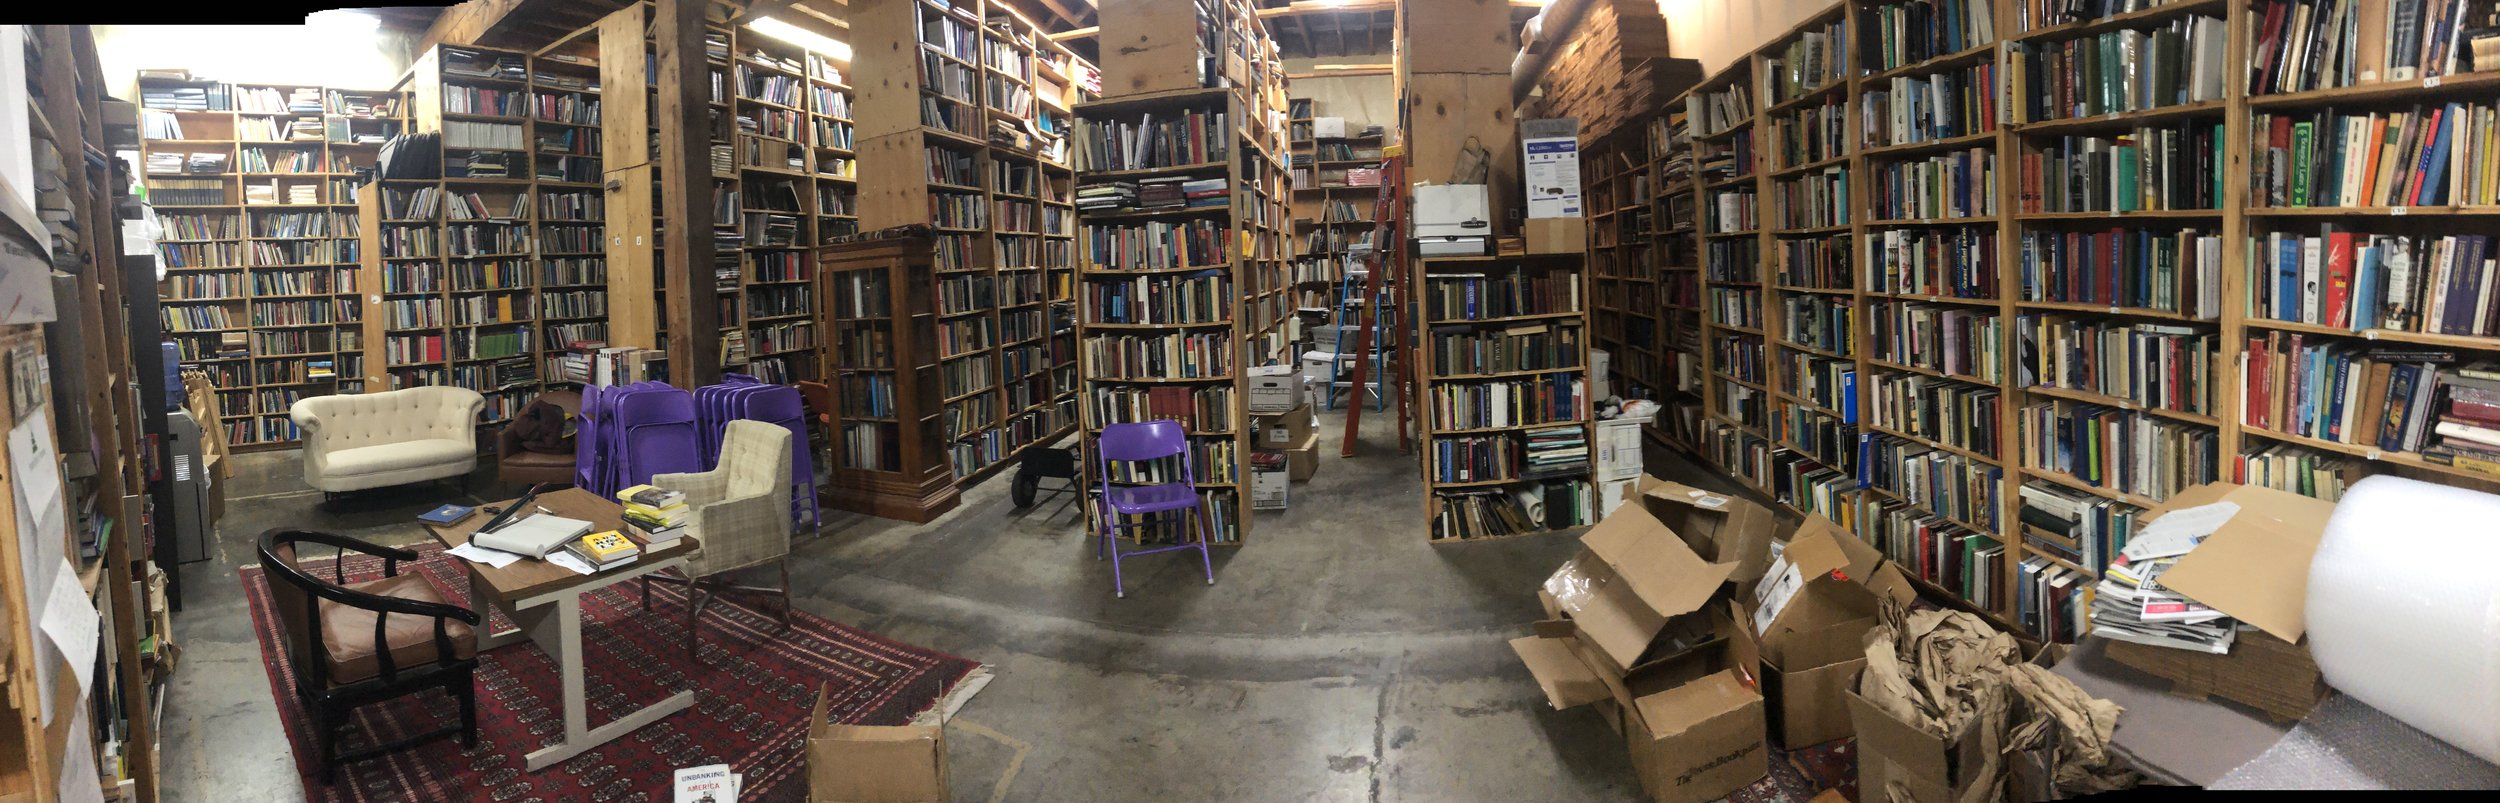 A small part of Daedalus Books' warehouse